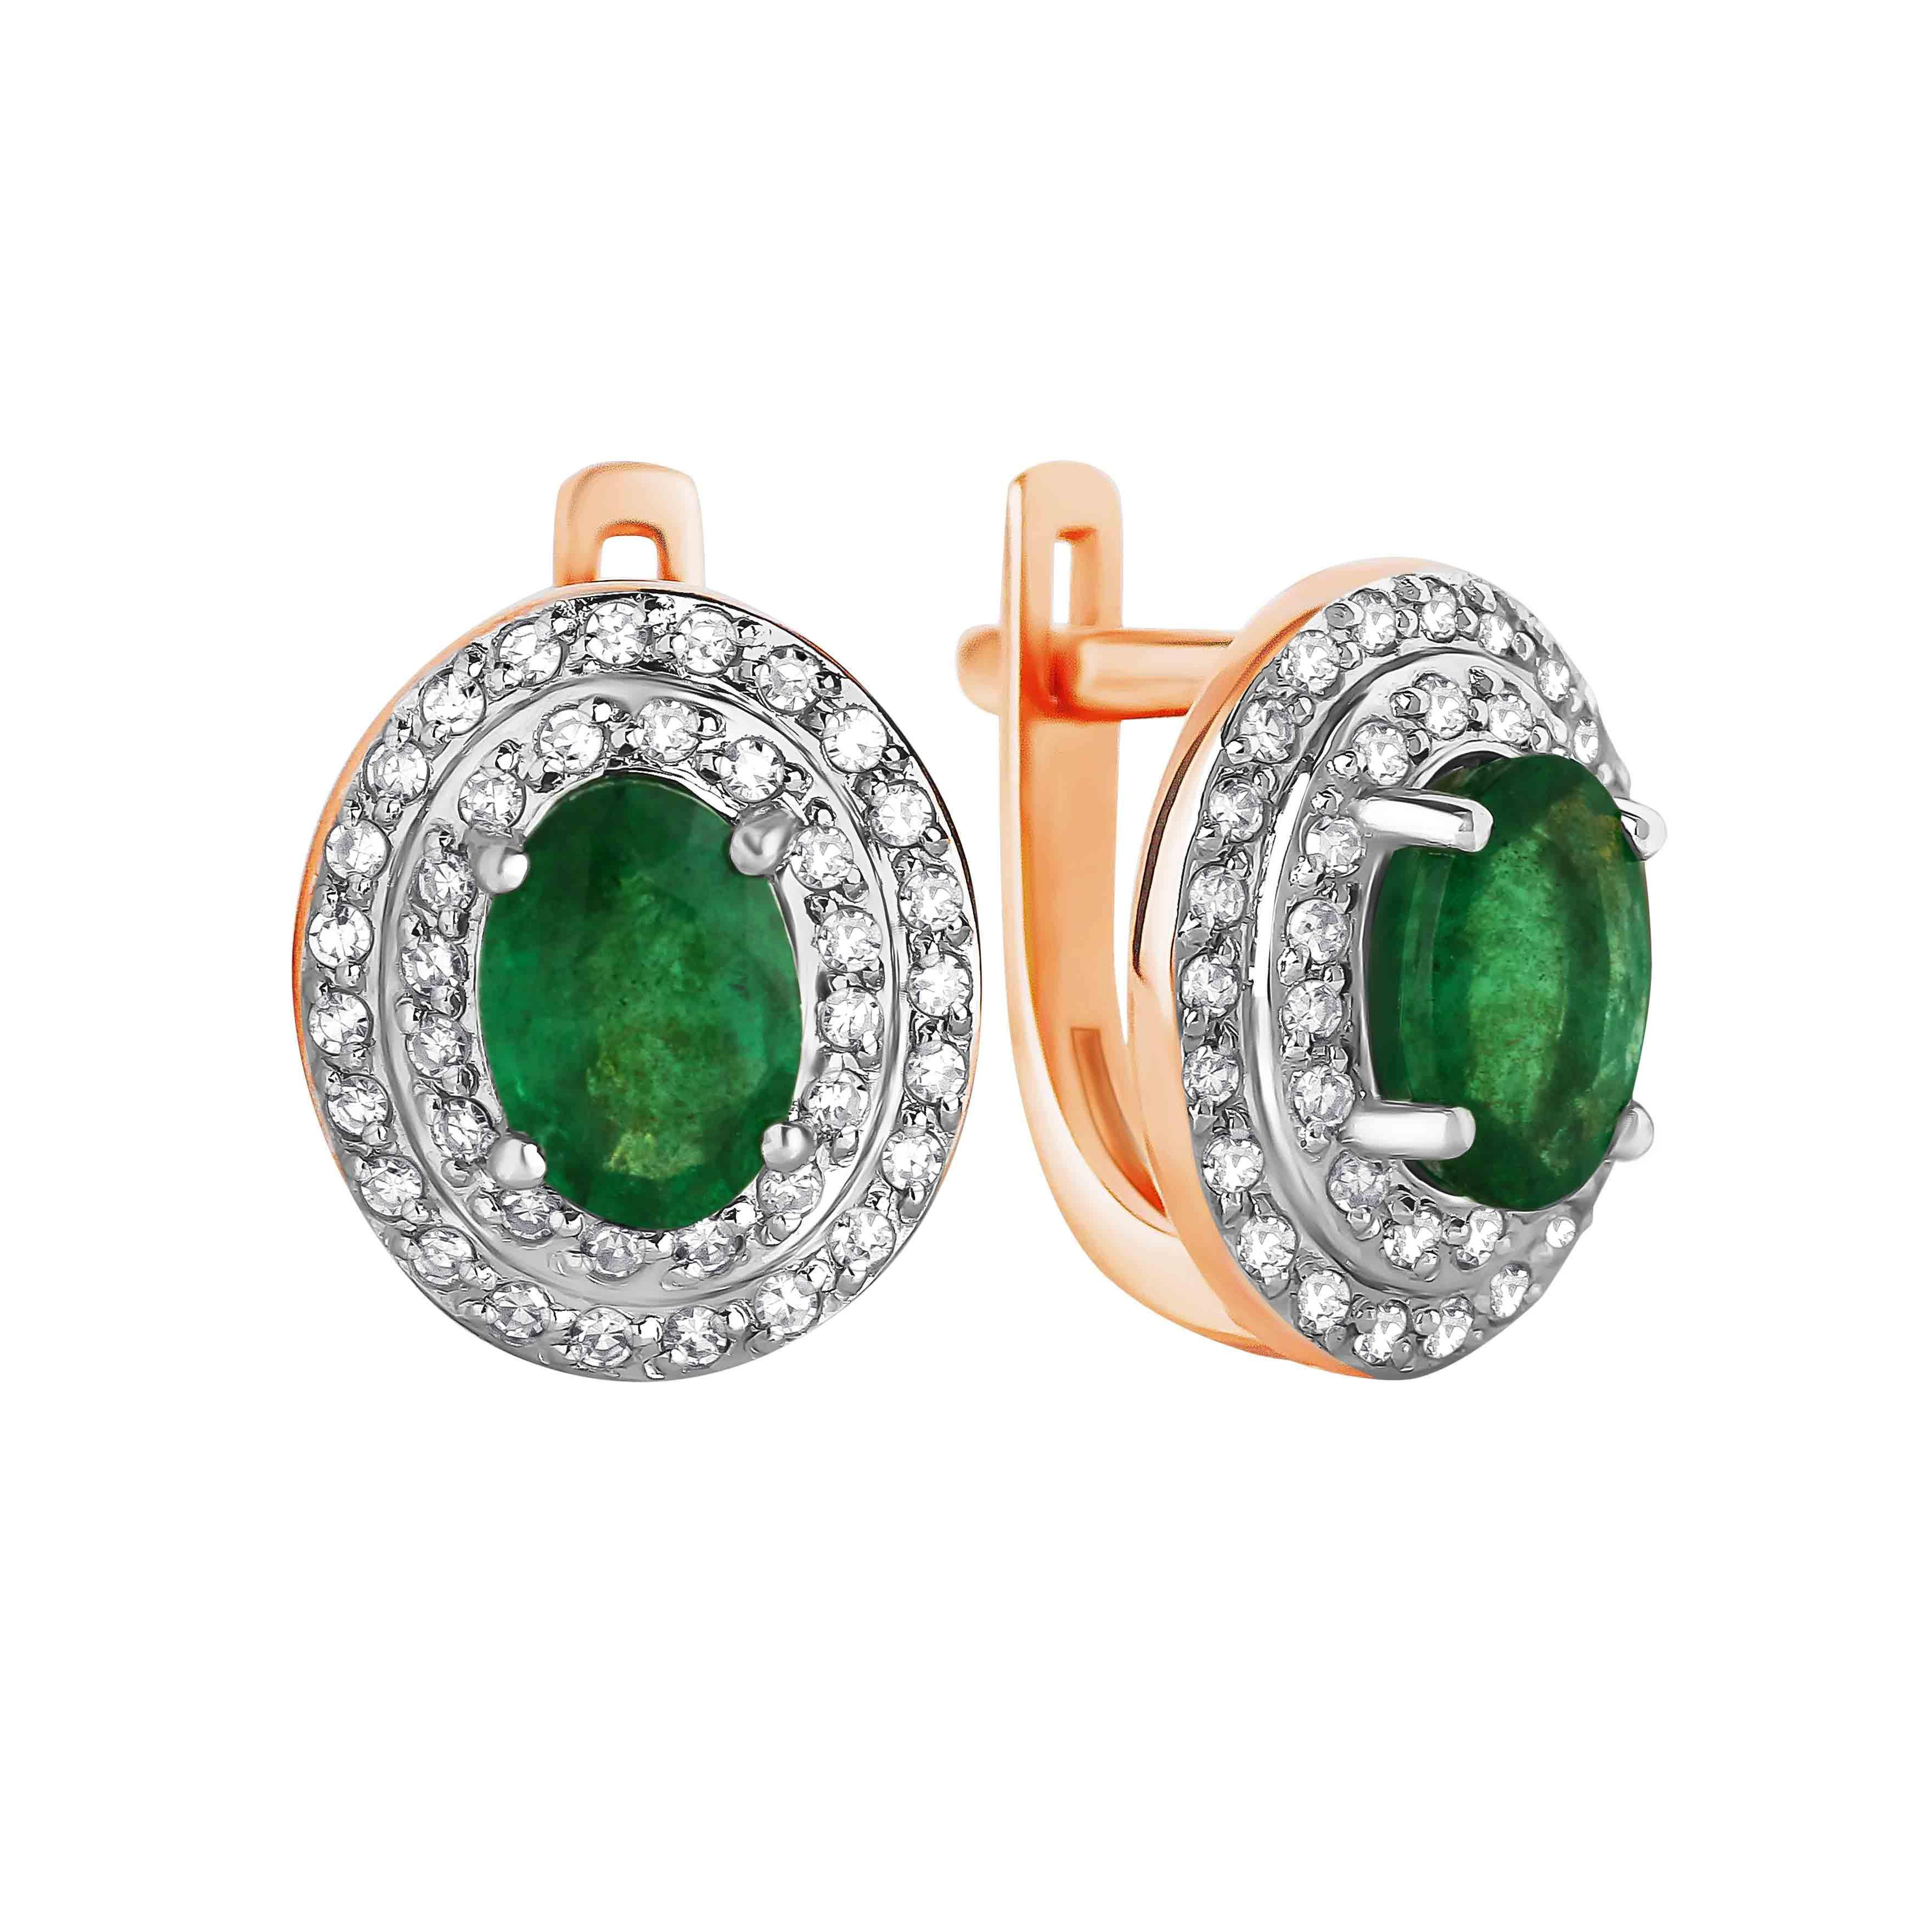 Emerald and Diamond Elliptical Earrings